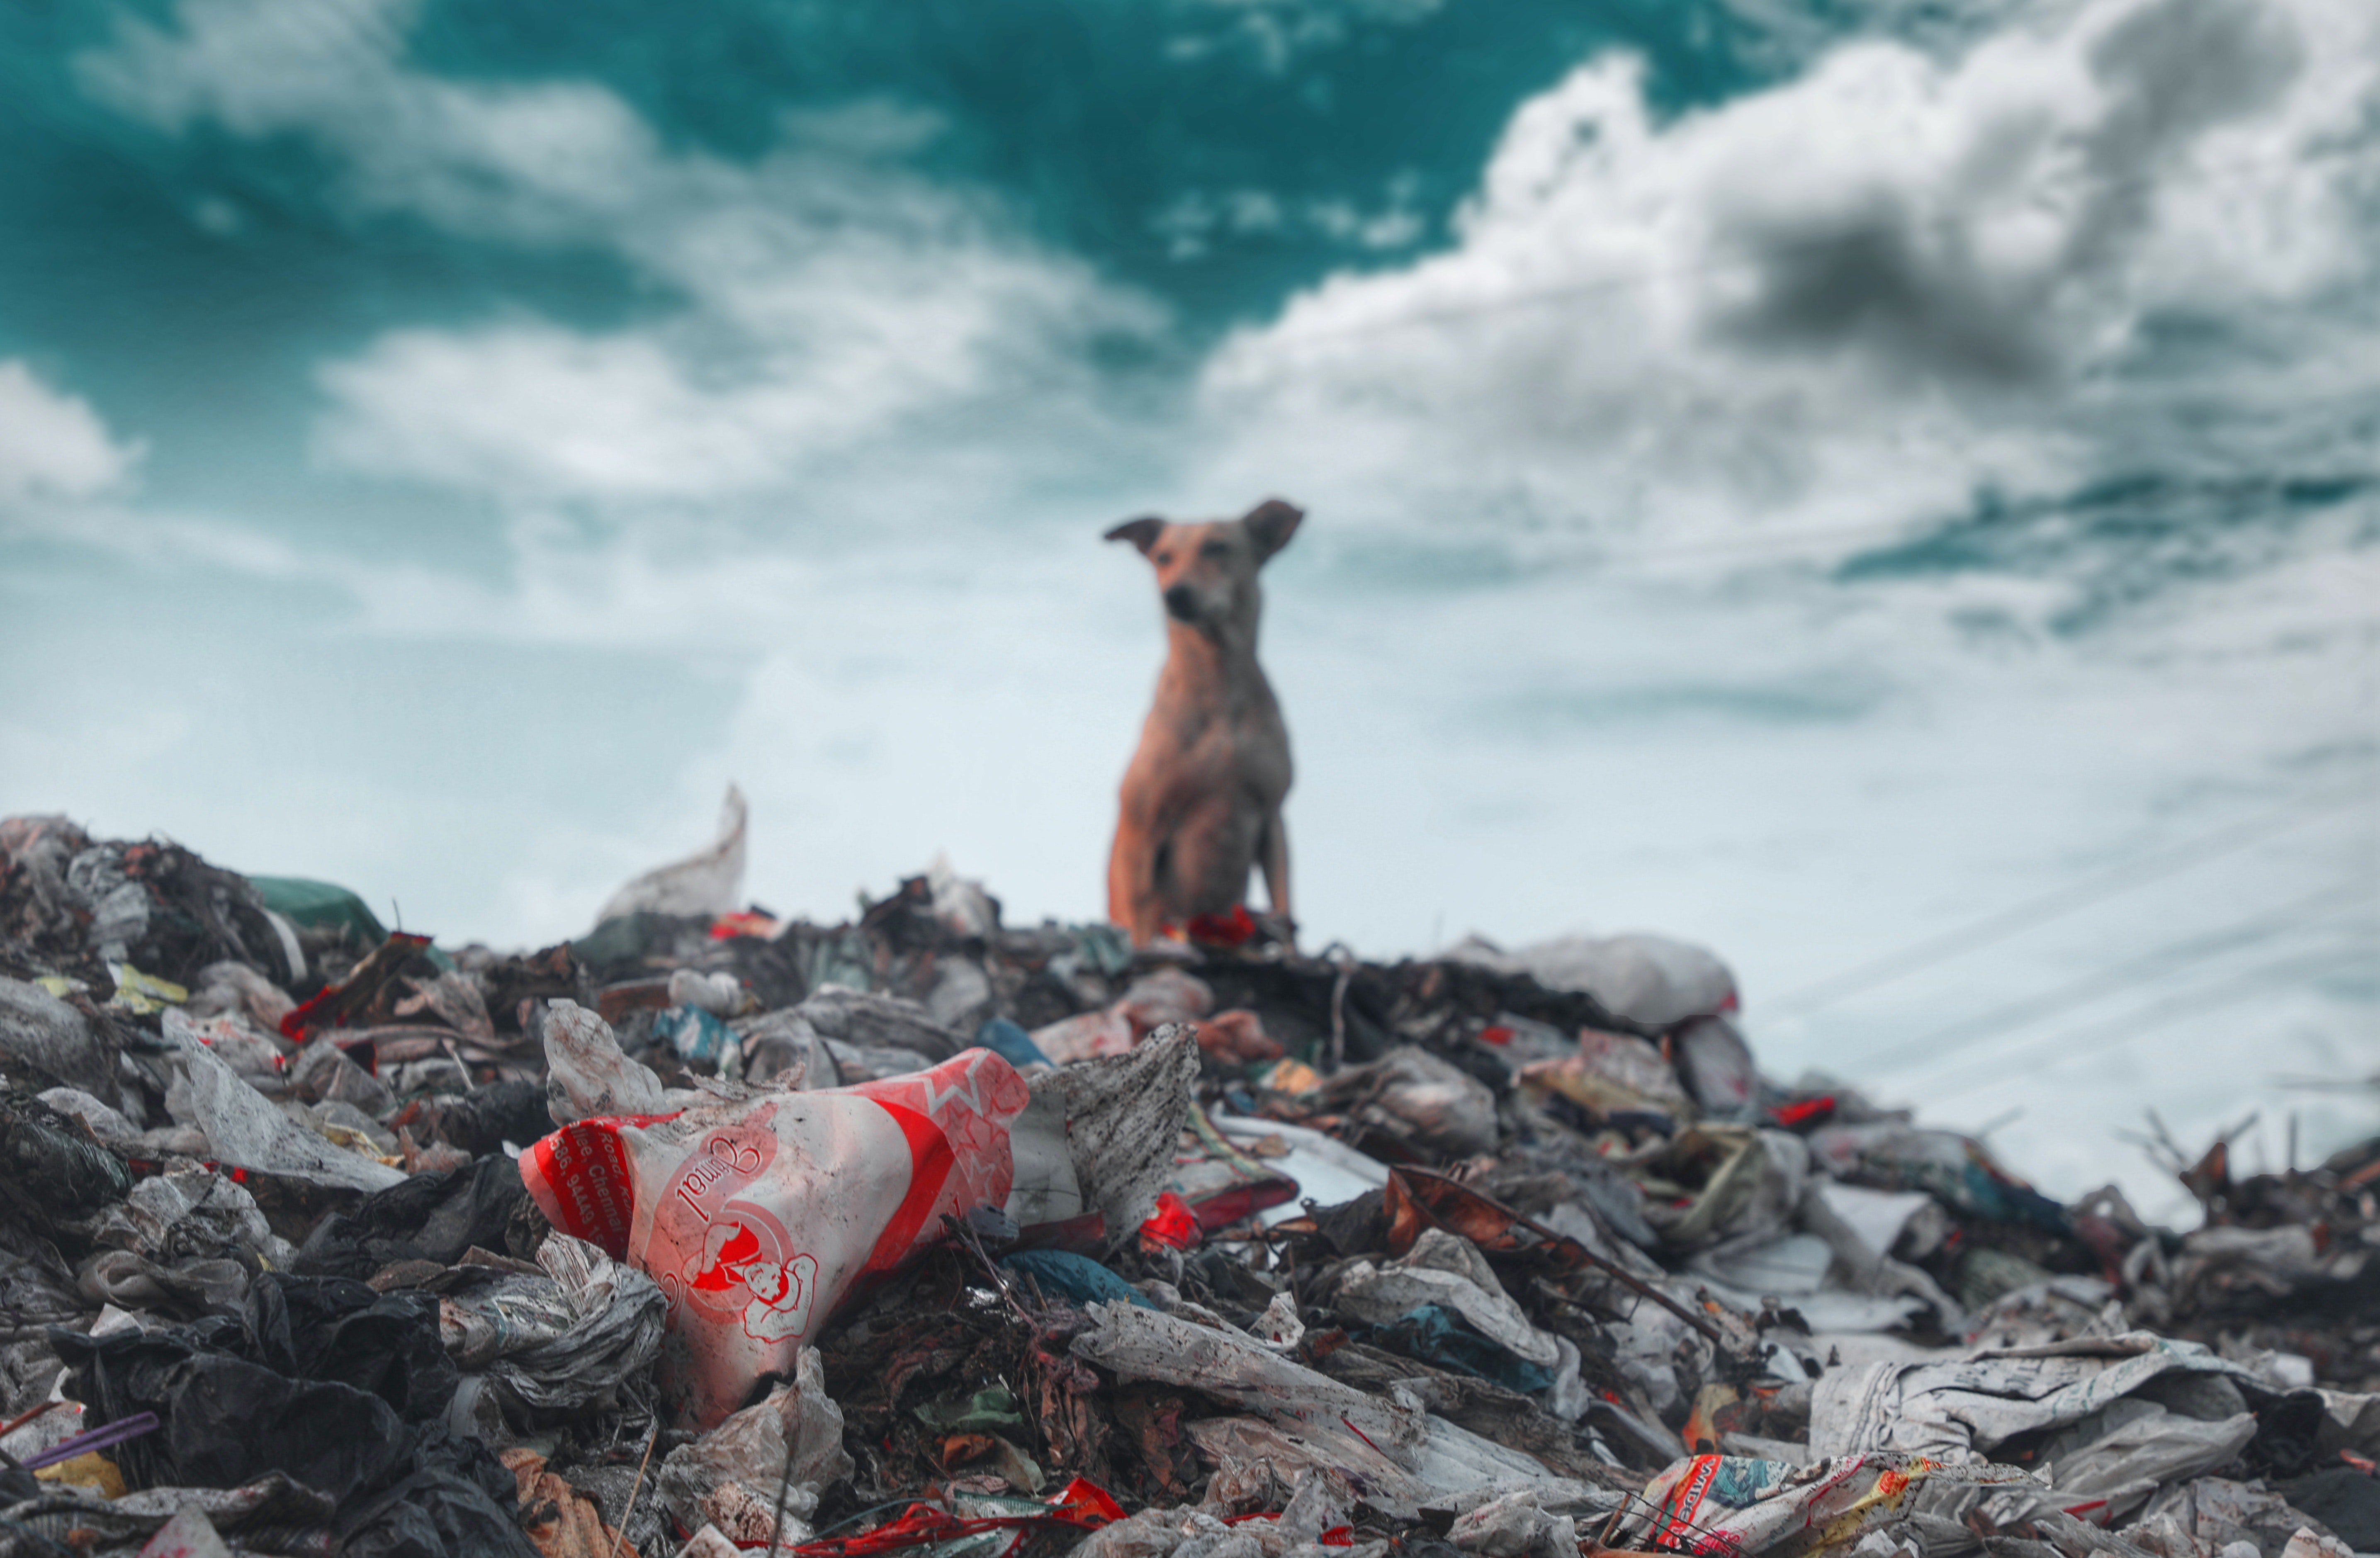 The Zero Waste Lifestyle What It Is, and How It Can Make Your Life Better